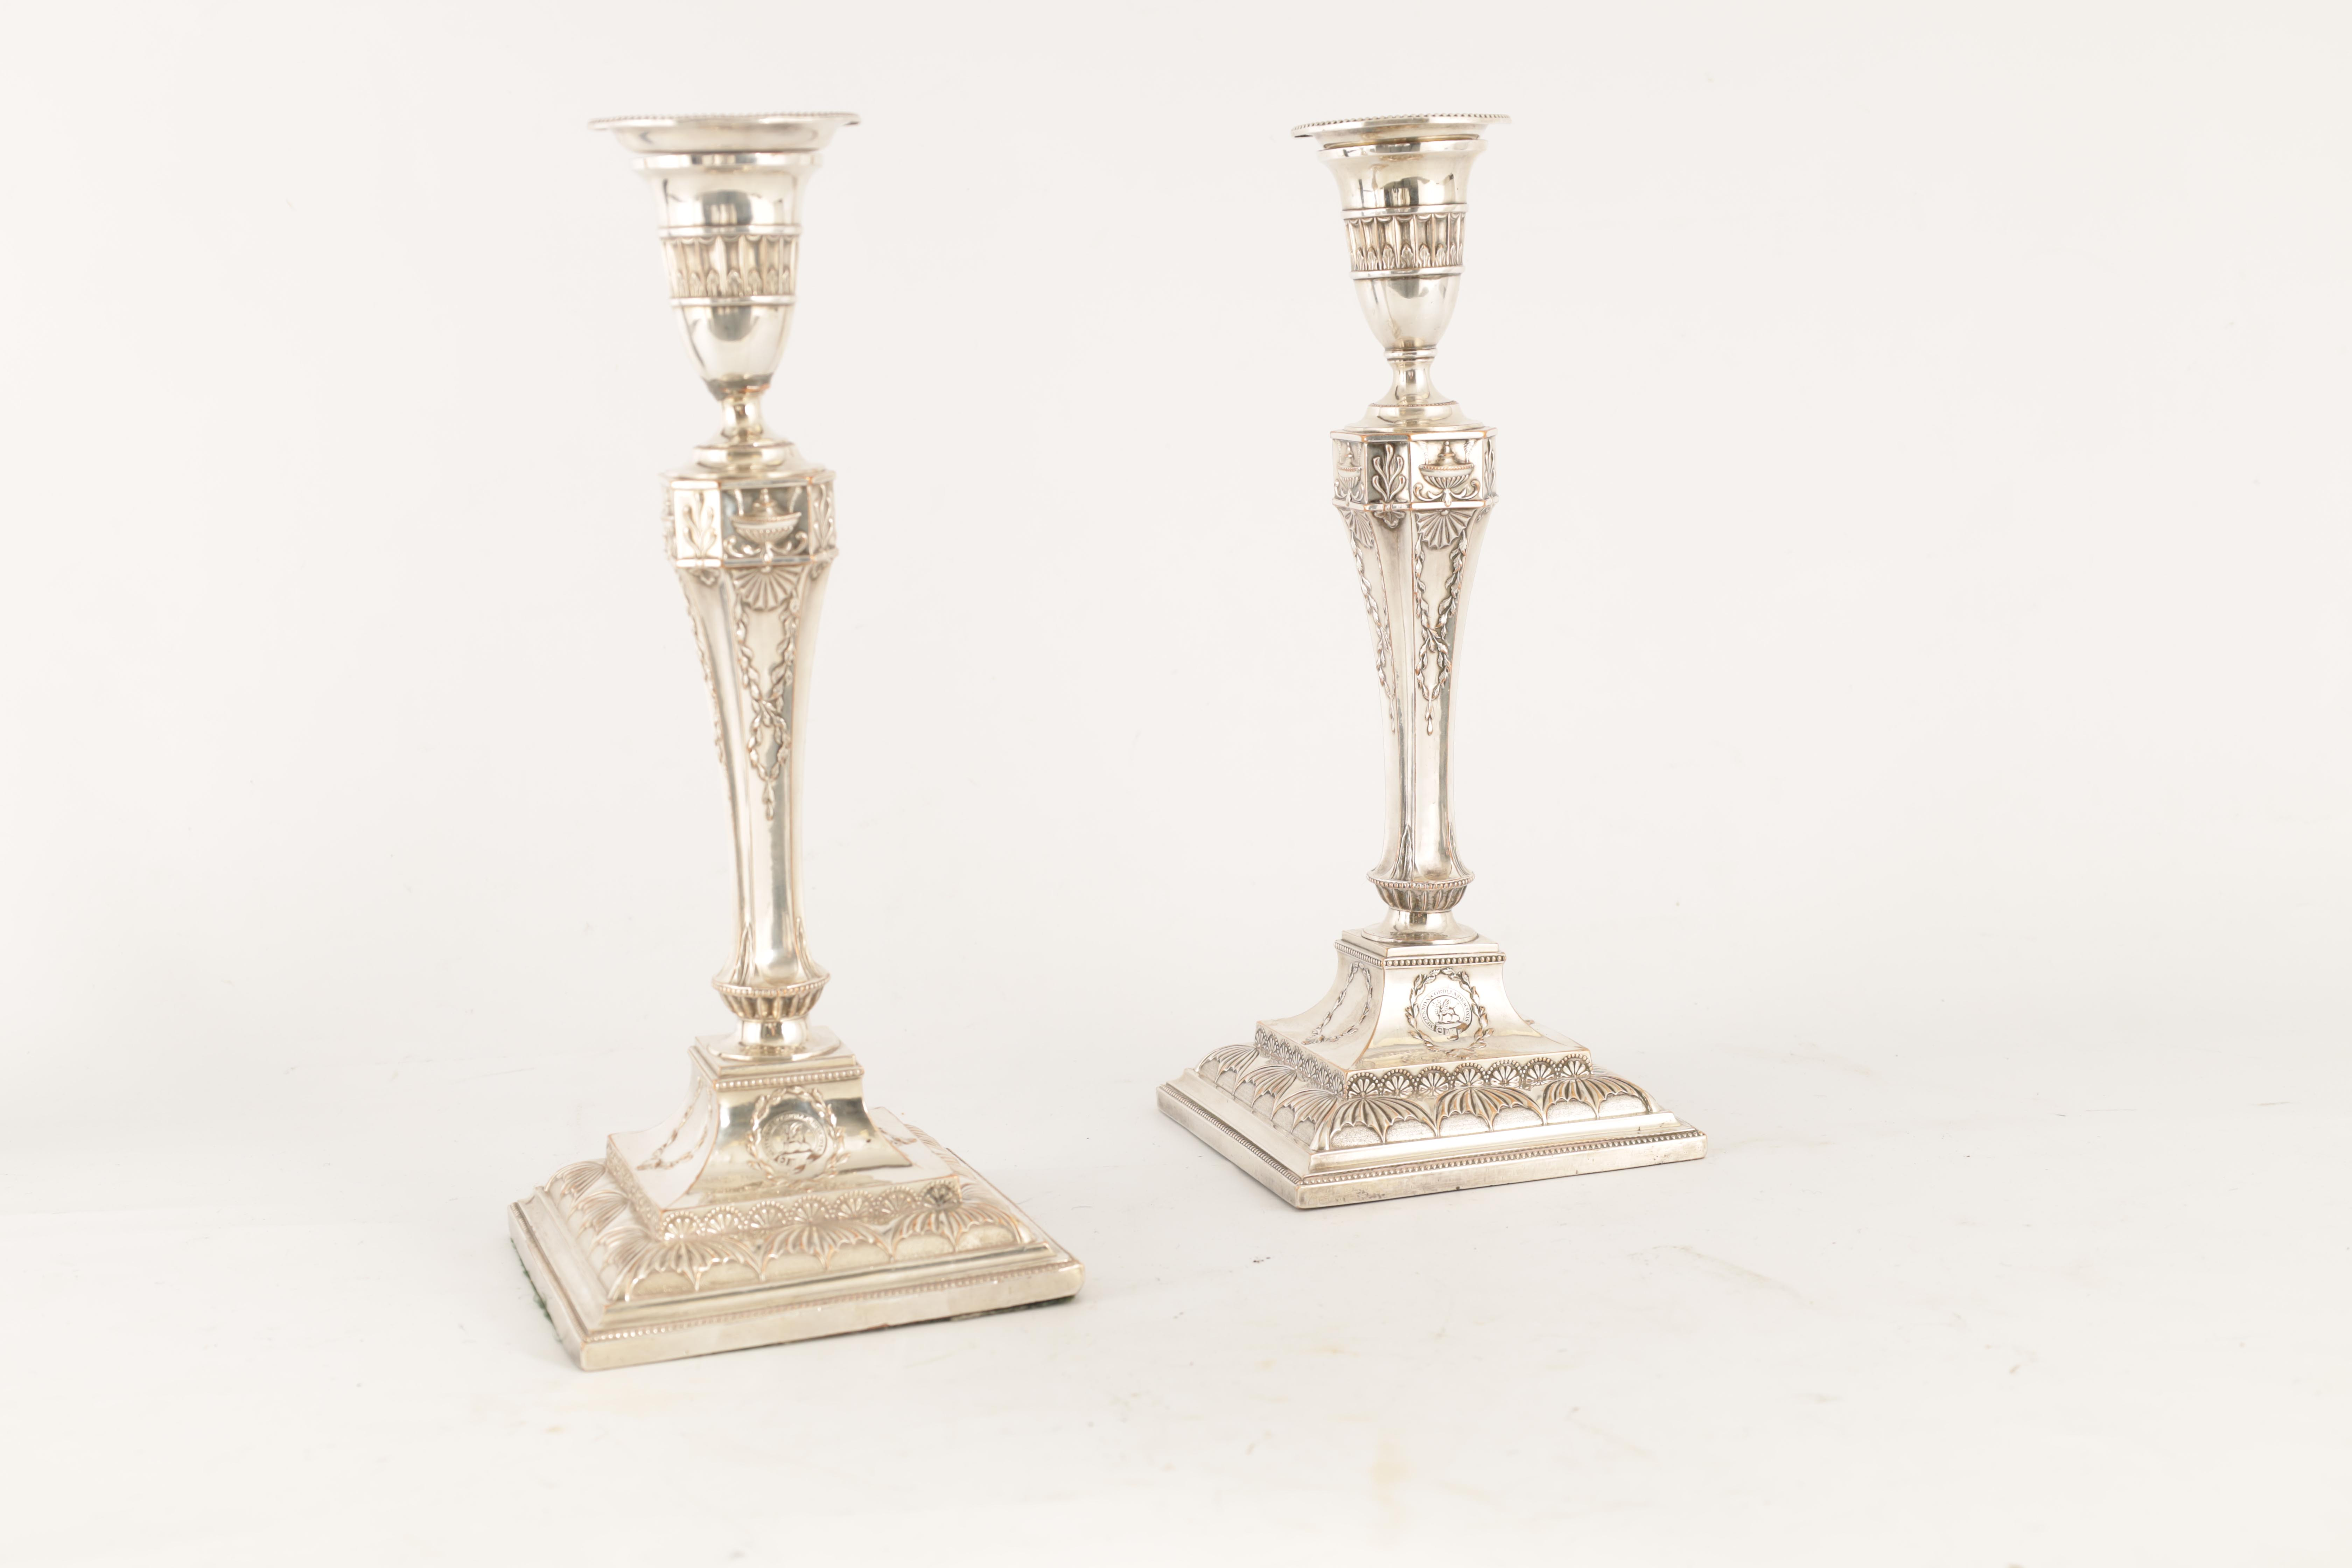 A PAIR OF 19TH CENTURY SHEFFIELD PLATE SILVER ON COPPER ADAM STYLE CANDLESTICKS bearing the crest - Image 2 of 5